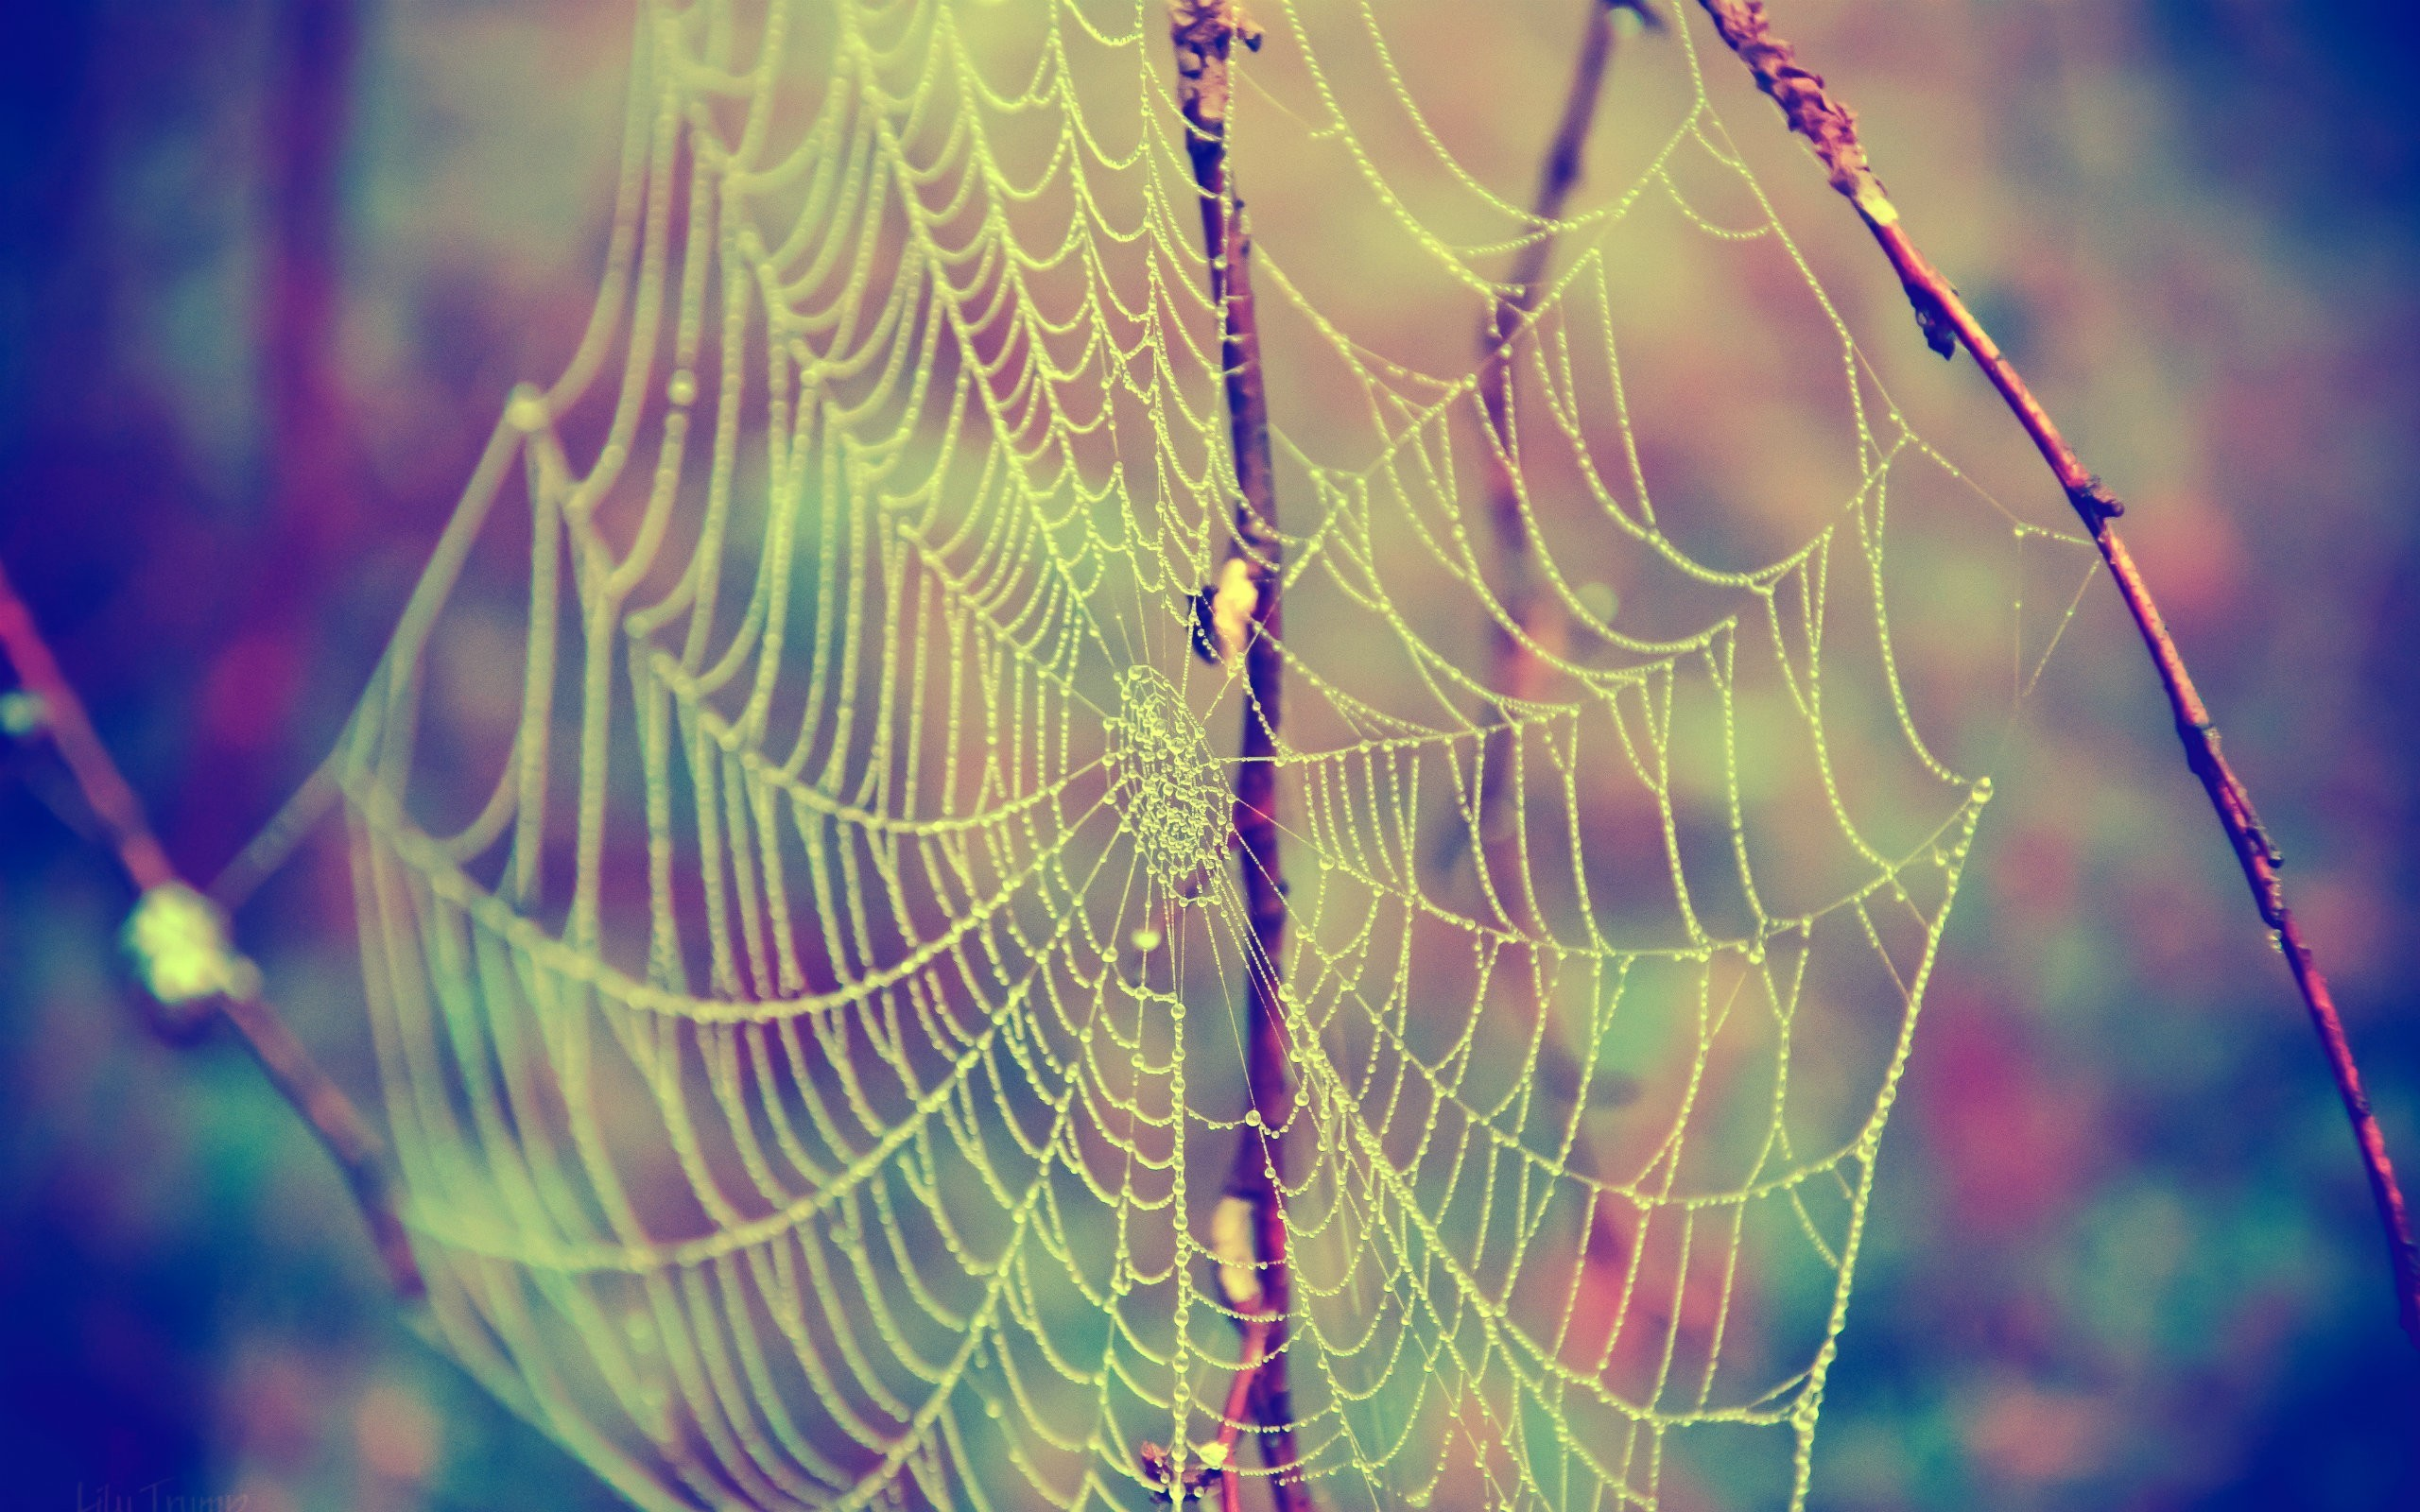 Nature insects web spider webs wallpaper